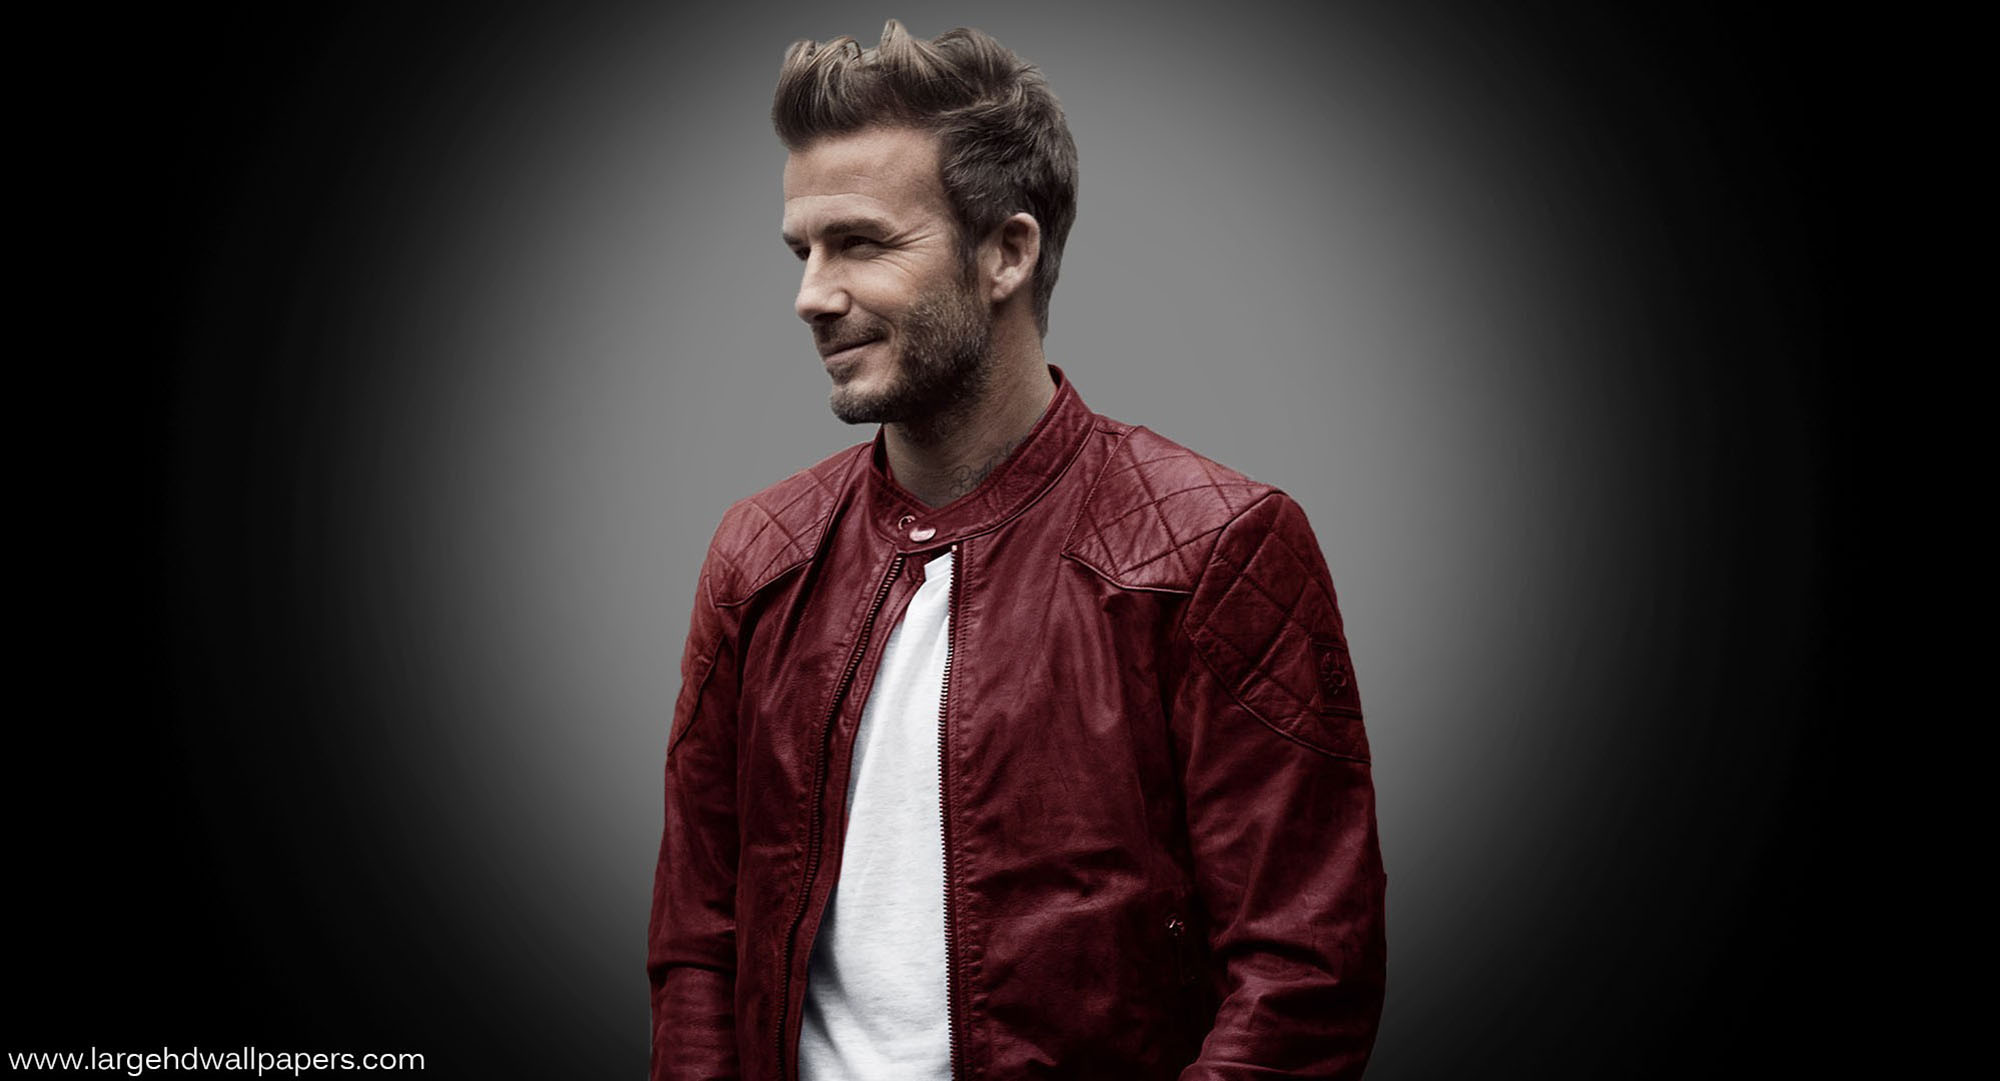 David Beckham Smile Face Full HD Wallpapers   Large HD 2000x1081